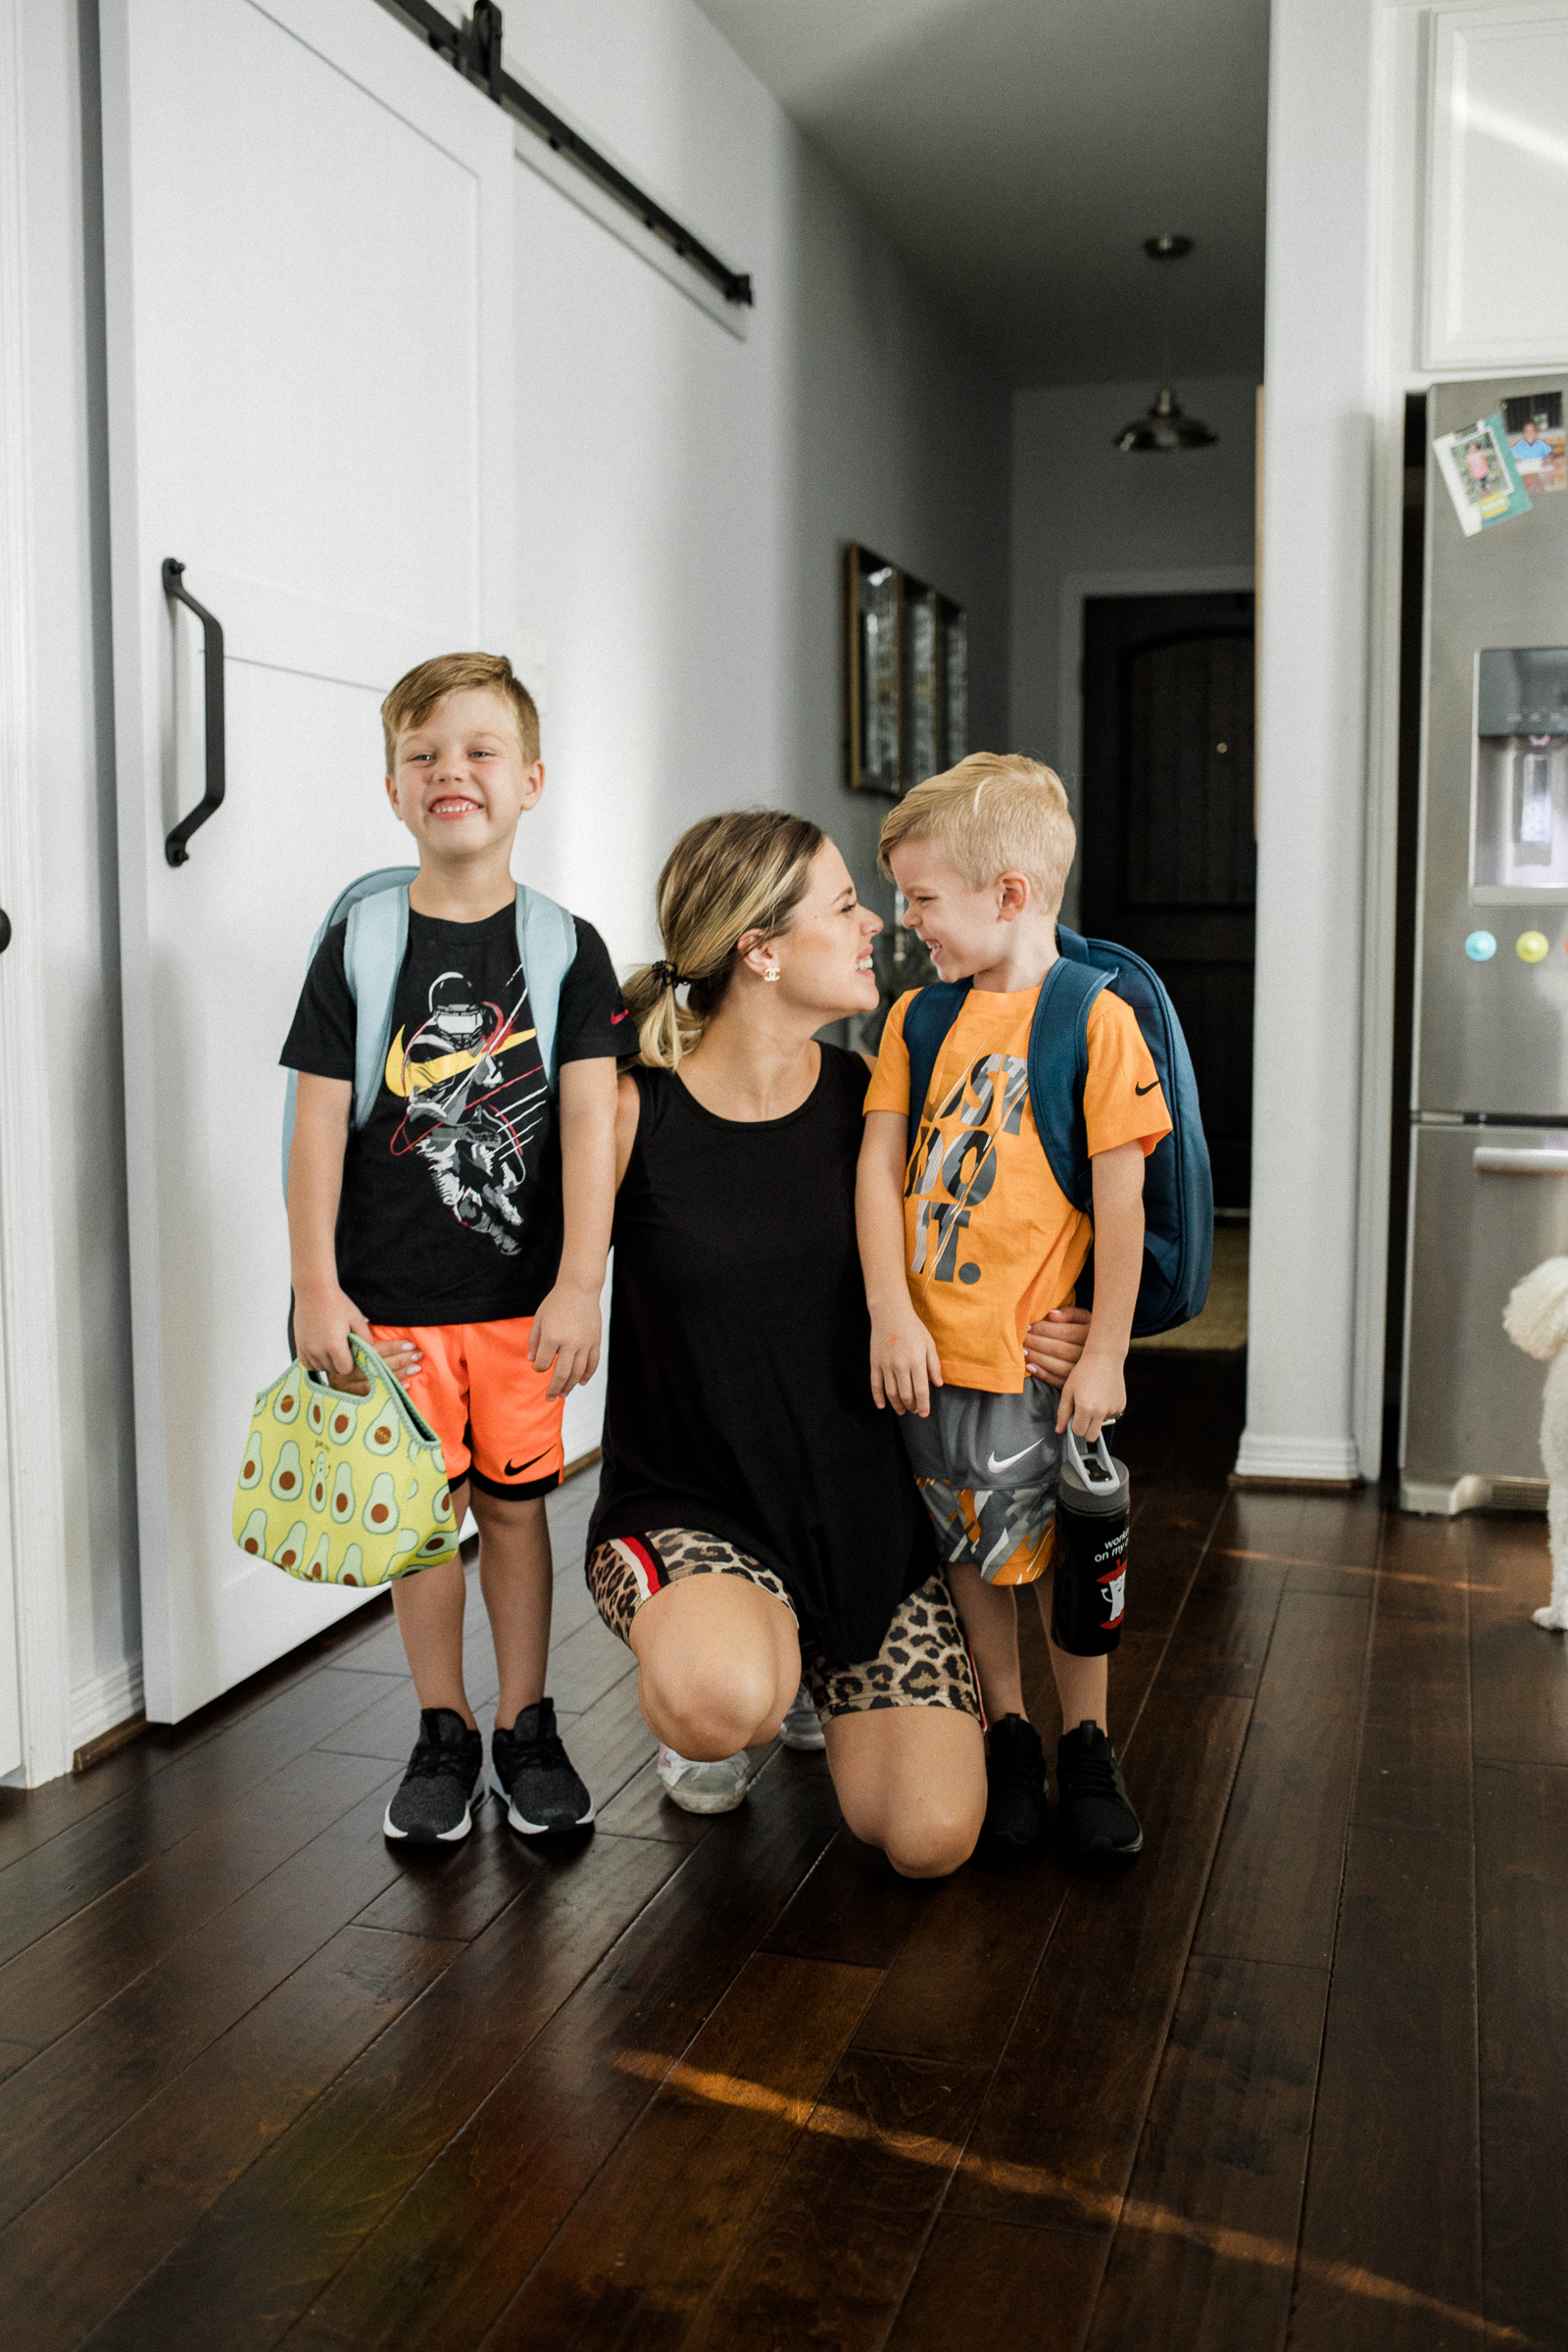 Houston lifestyle blogger Elly Brown shares 5 Tips to Help You Get Ready for Back to School and make the transition a bit more smoother!